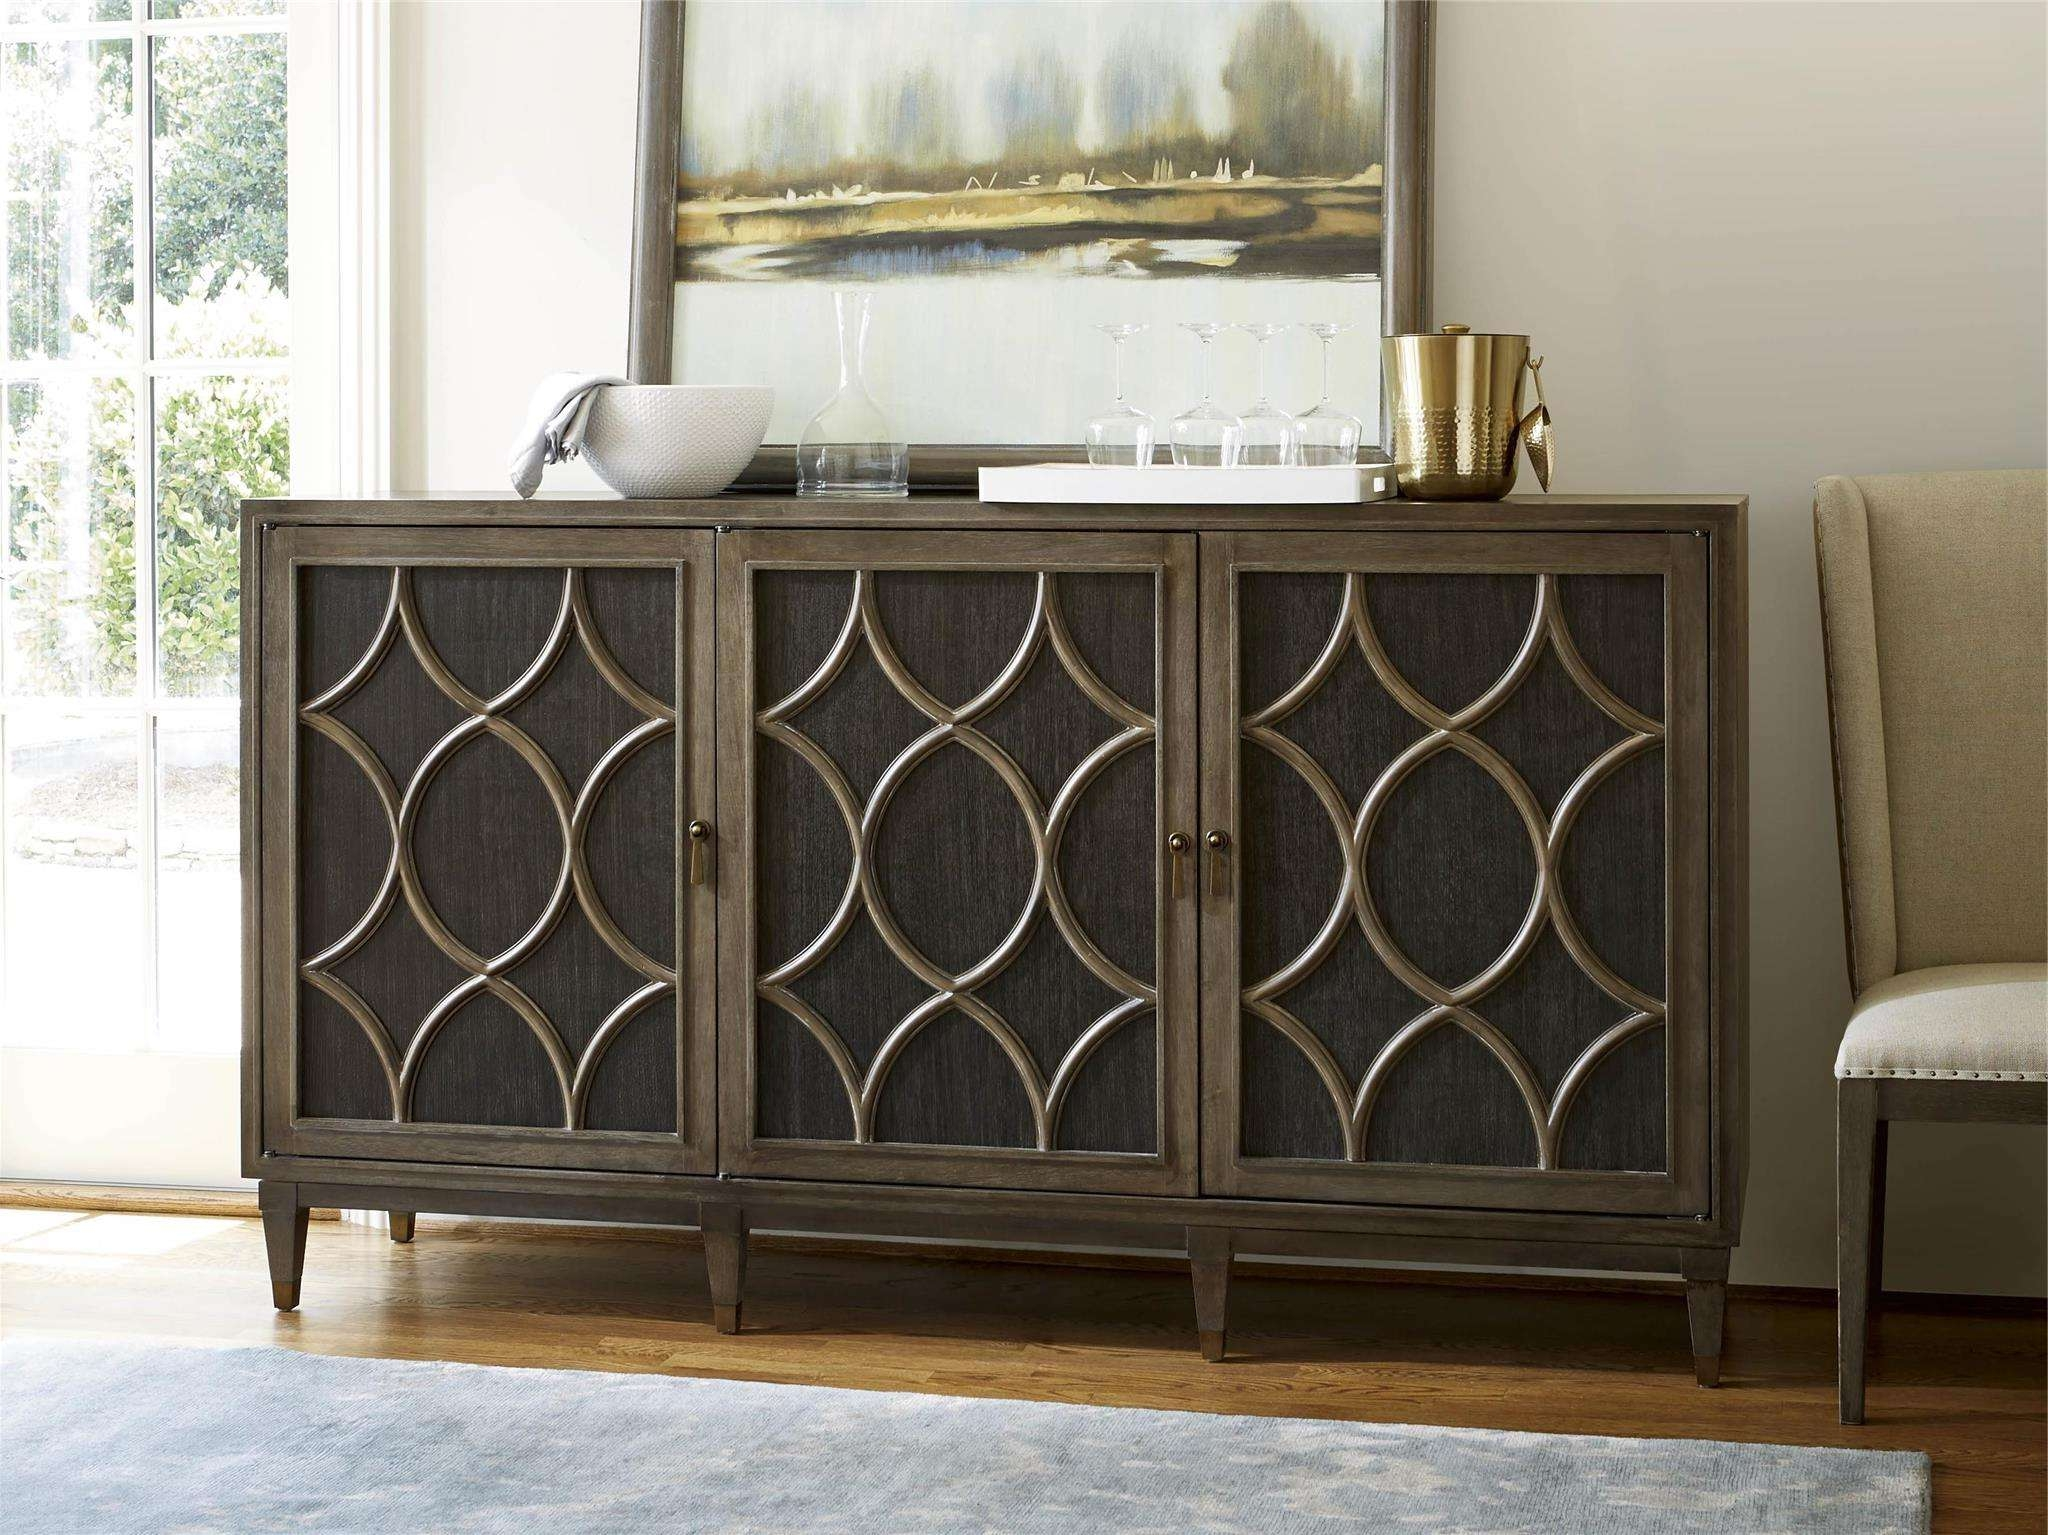 Universal Furniture | Playlist | Sideboard Intended For Furniture Sideboards (Gallery 13 of 20)